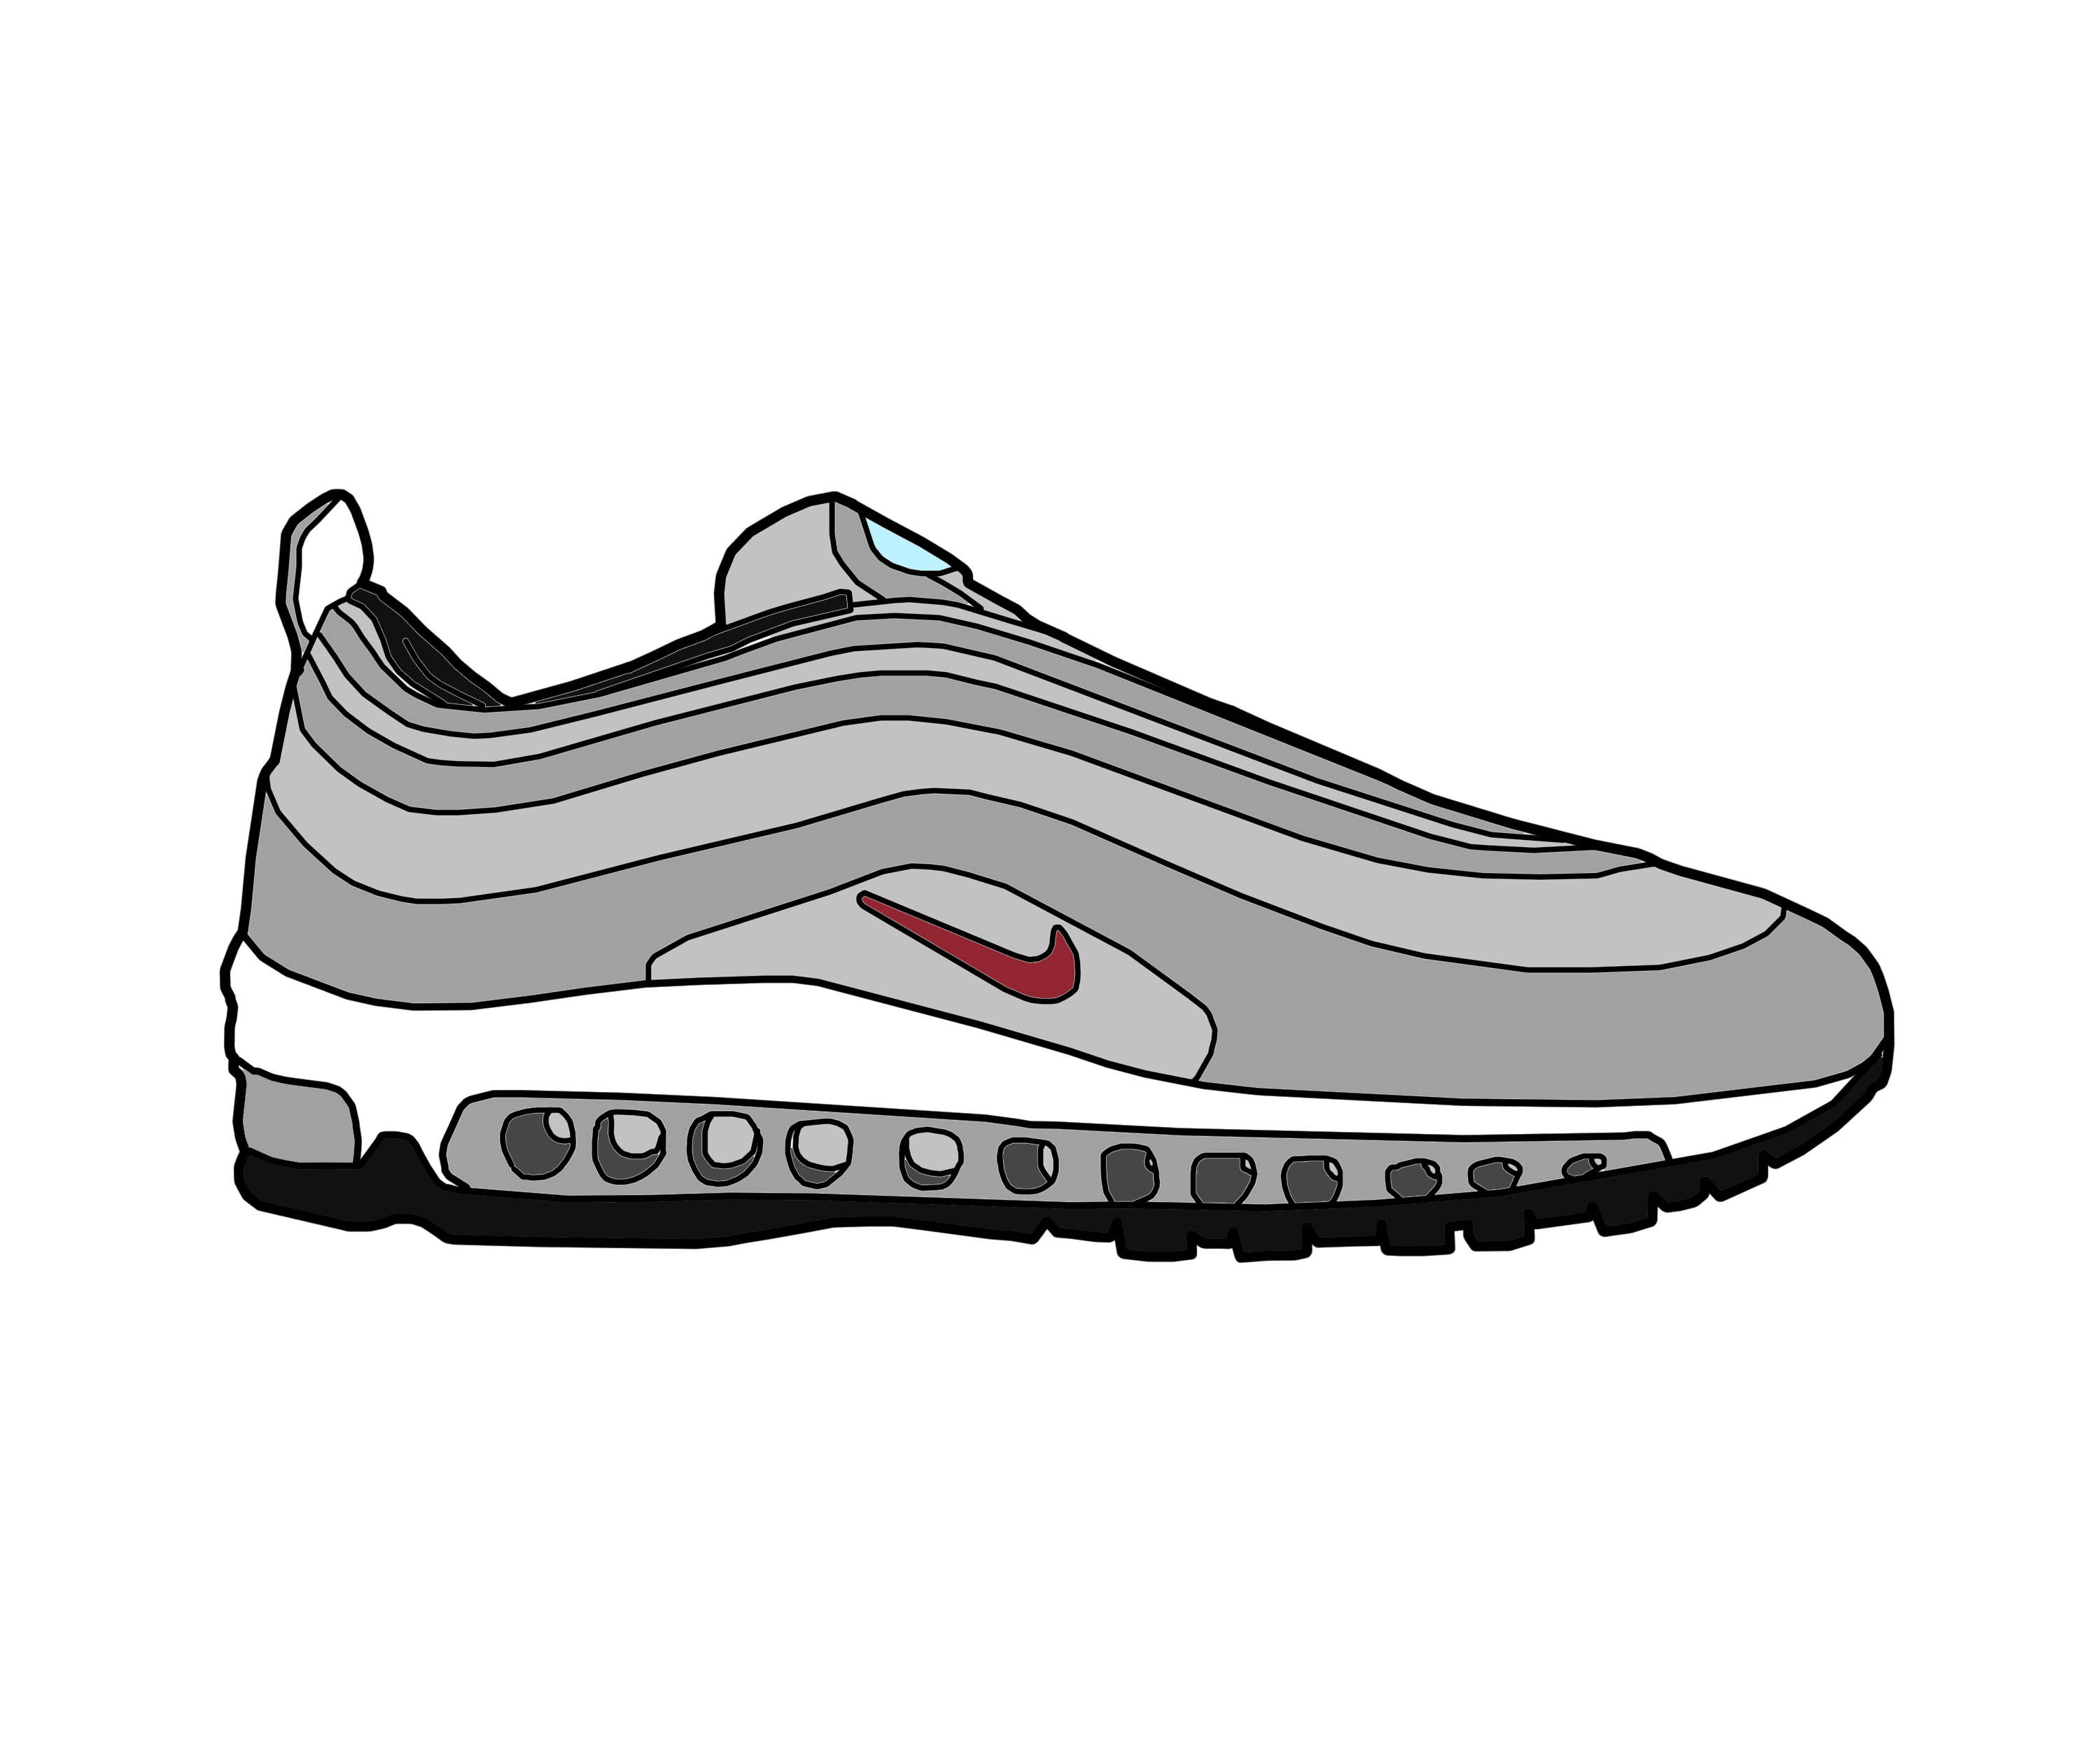 reputable site 248e6 73413 ... Nike Air Max 97 OG by MattisamazingPS .